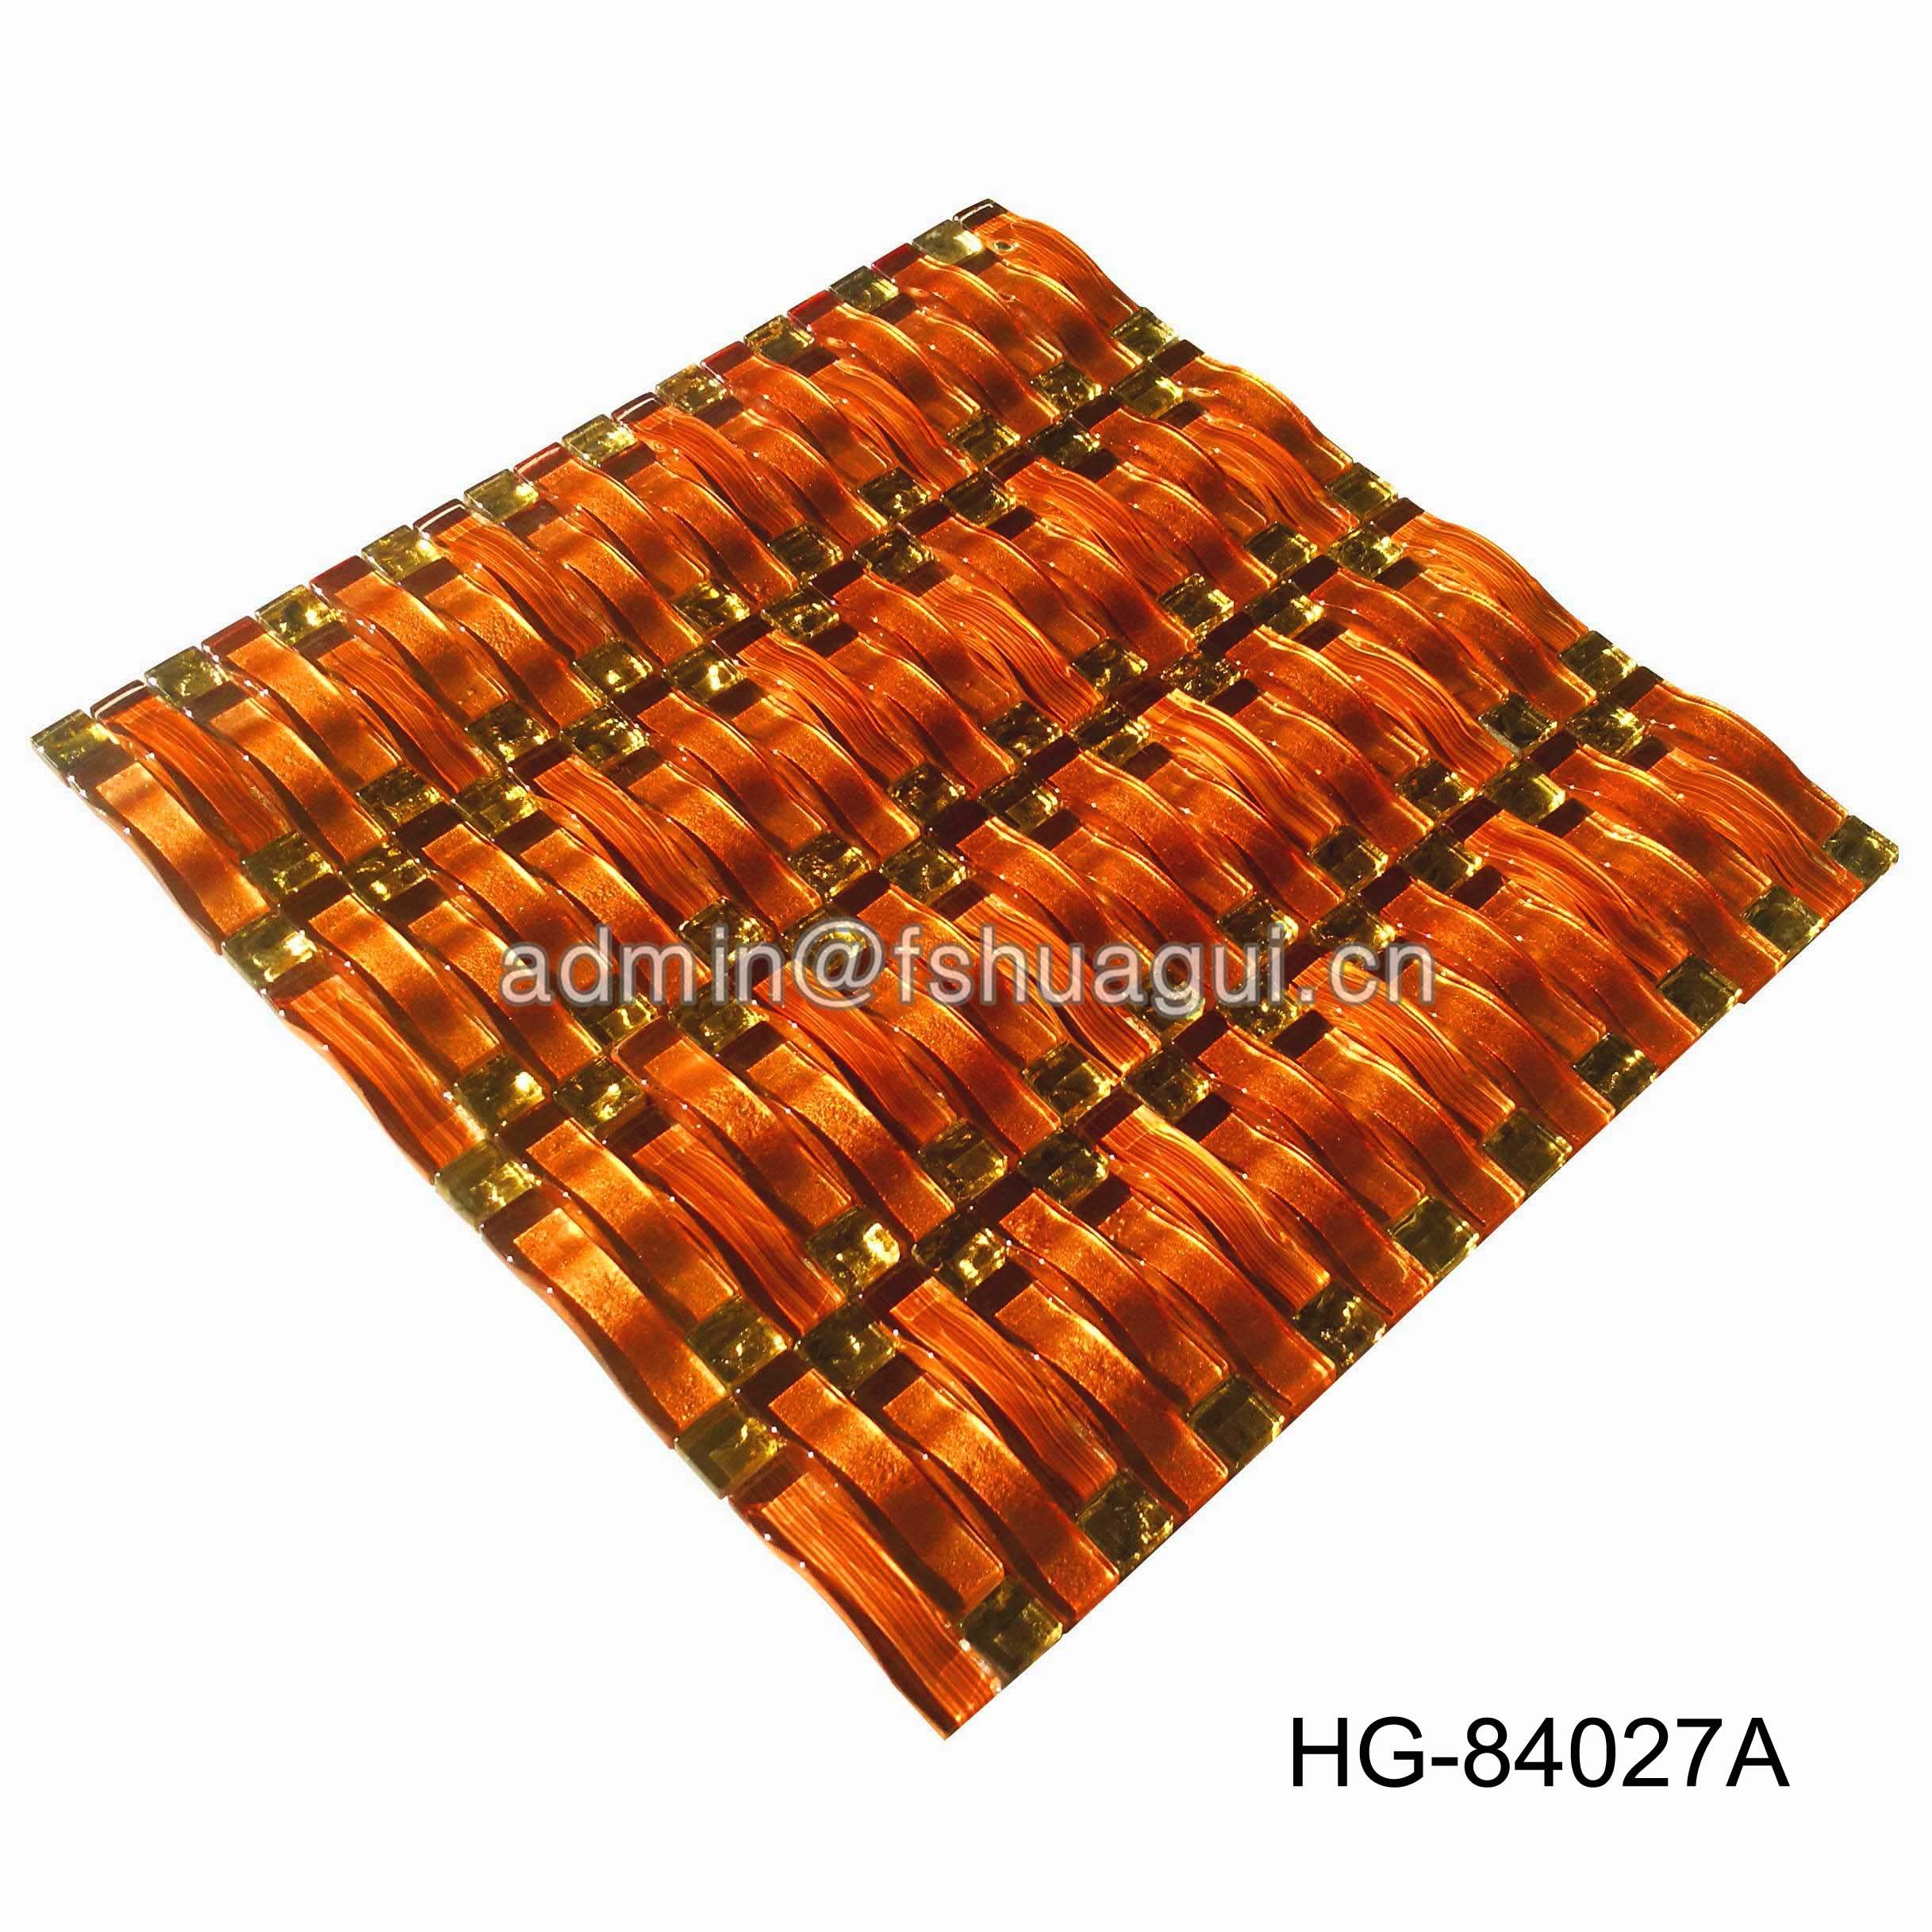 Huagui Luxurious  Rose Glad Color Glass Mosaic Tile For Wall  HG-84027A GLASS MOSAIC TILE image44